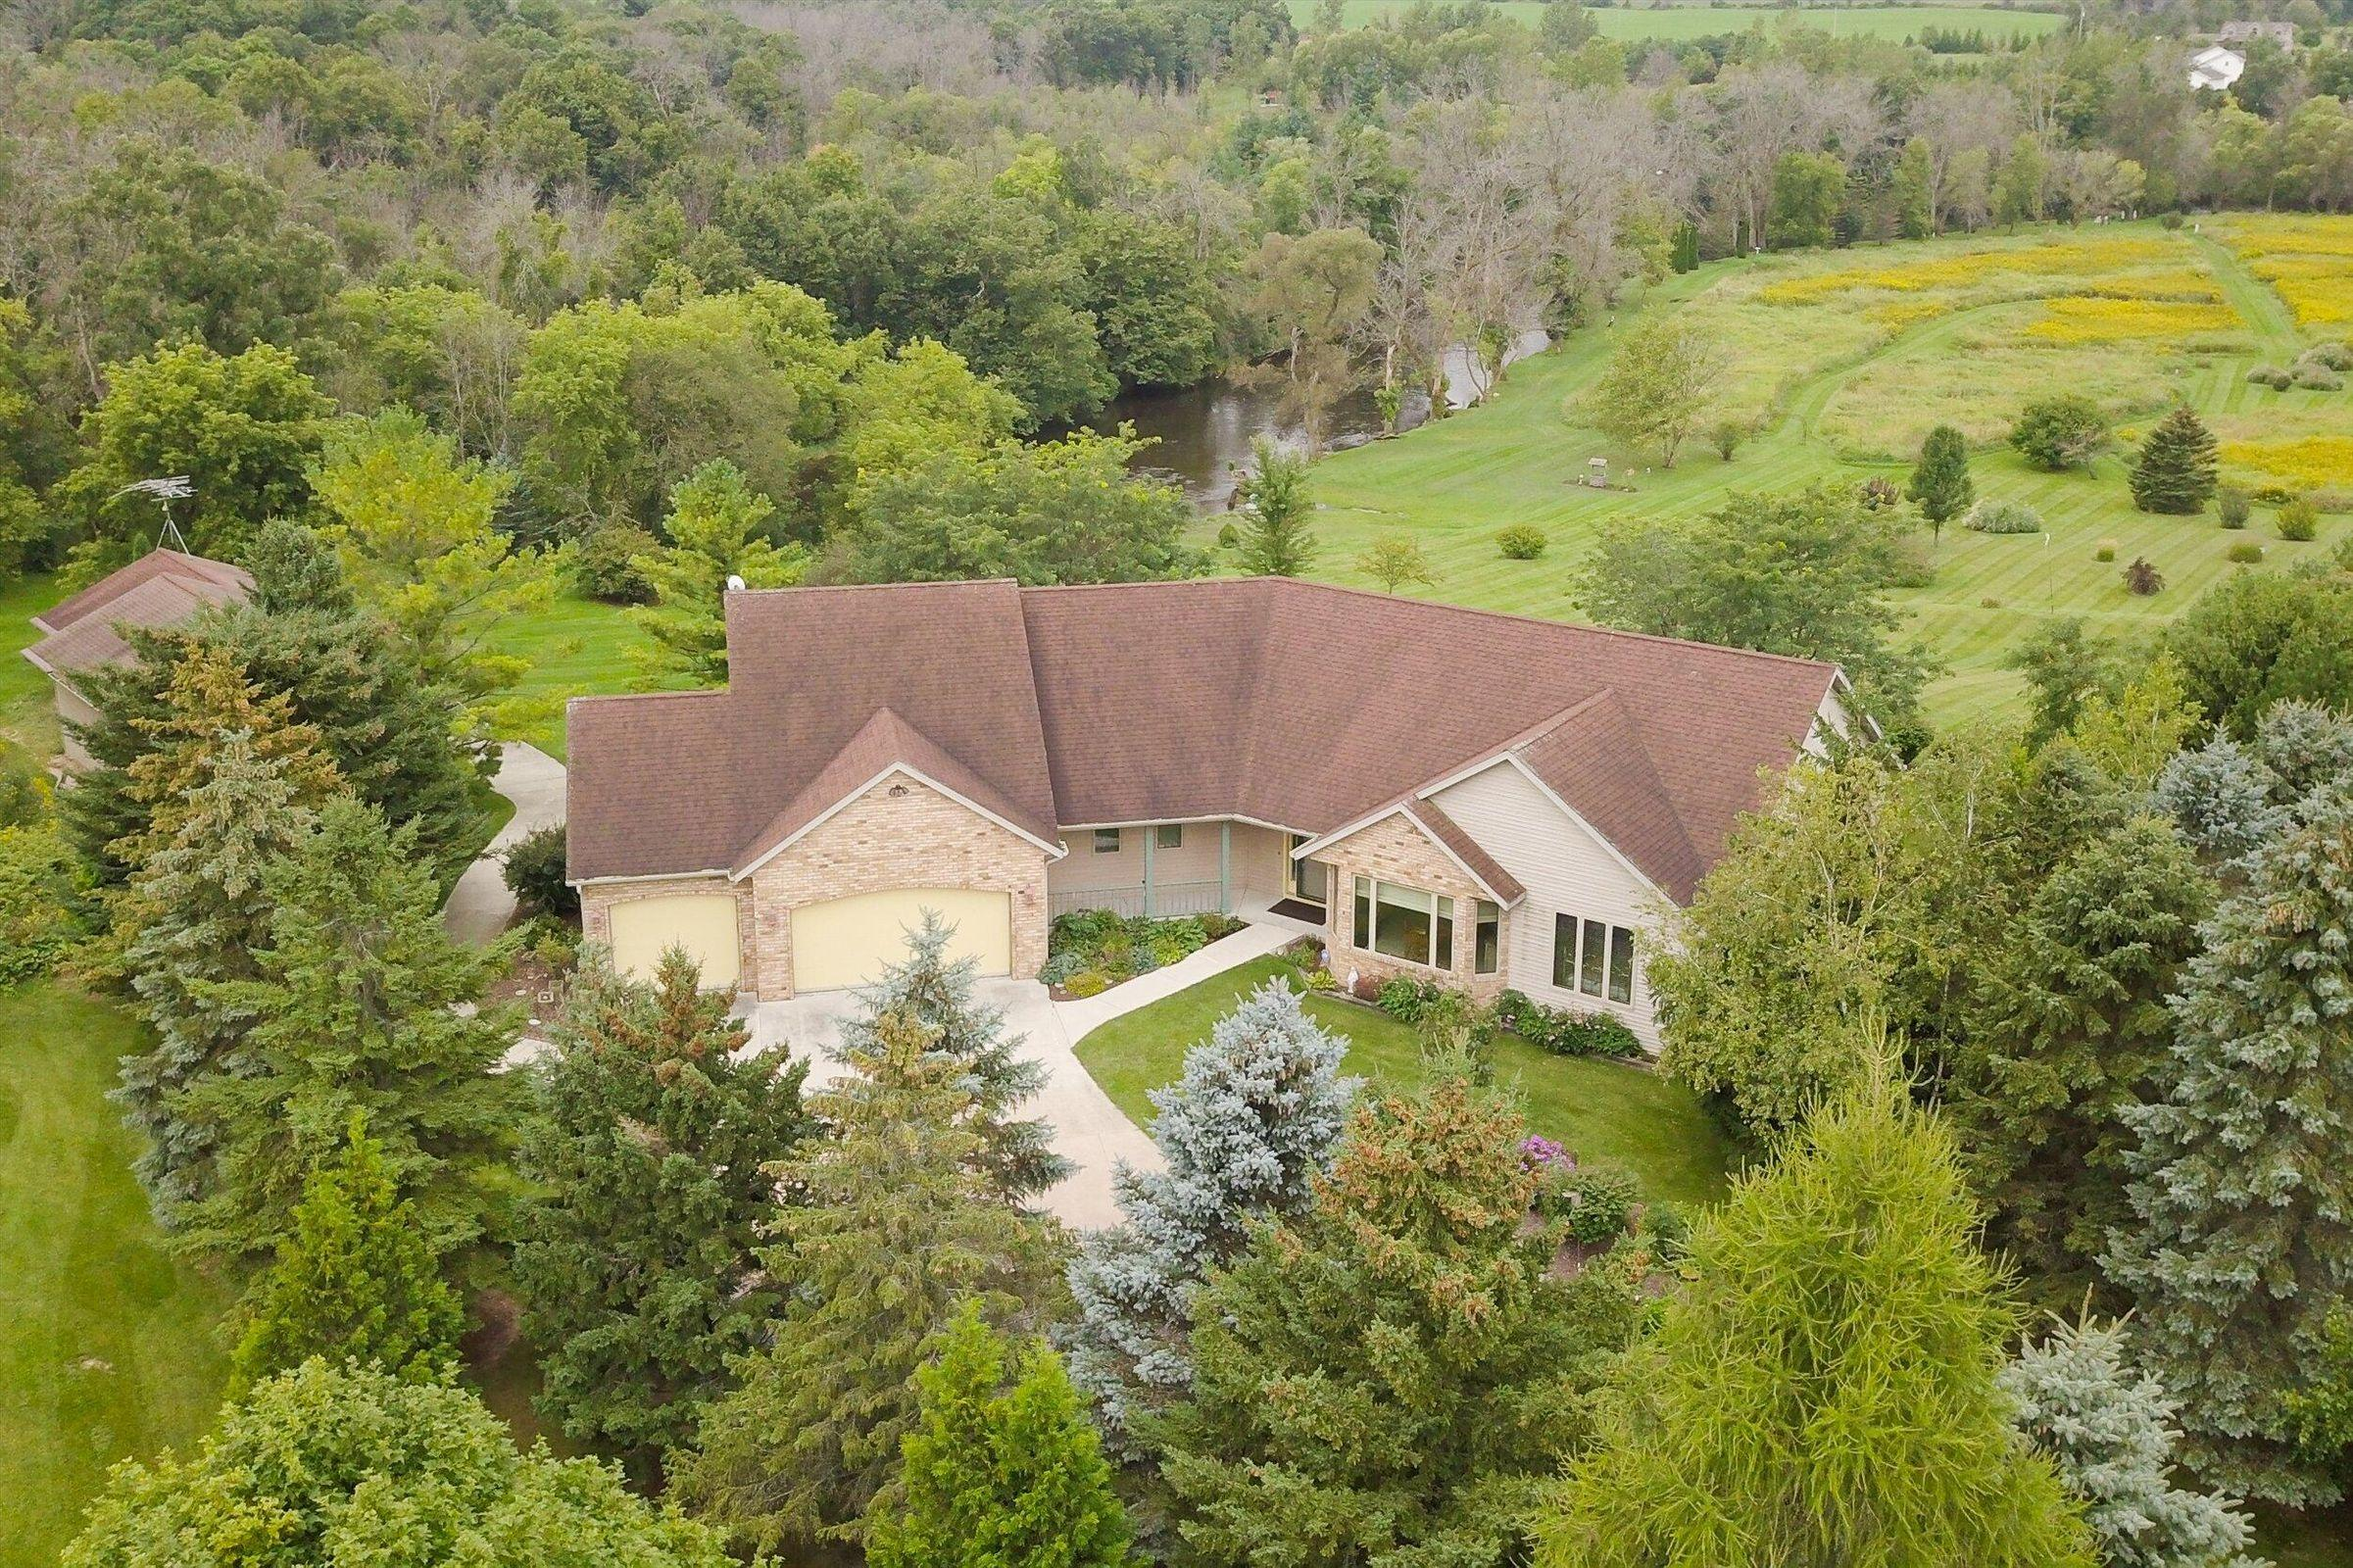 HOME FOR SALE – Great location for your private retreat!